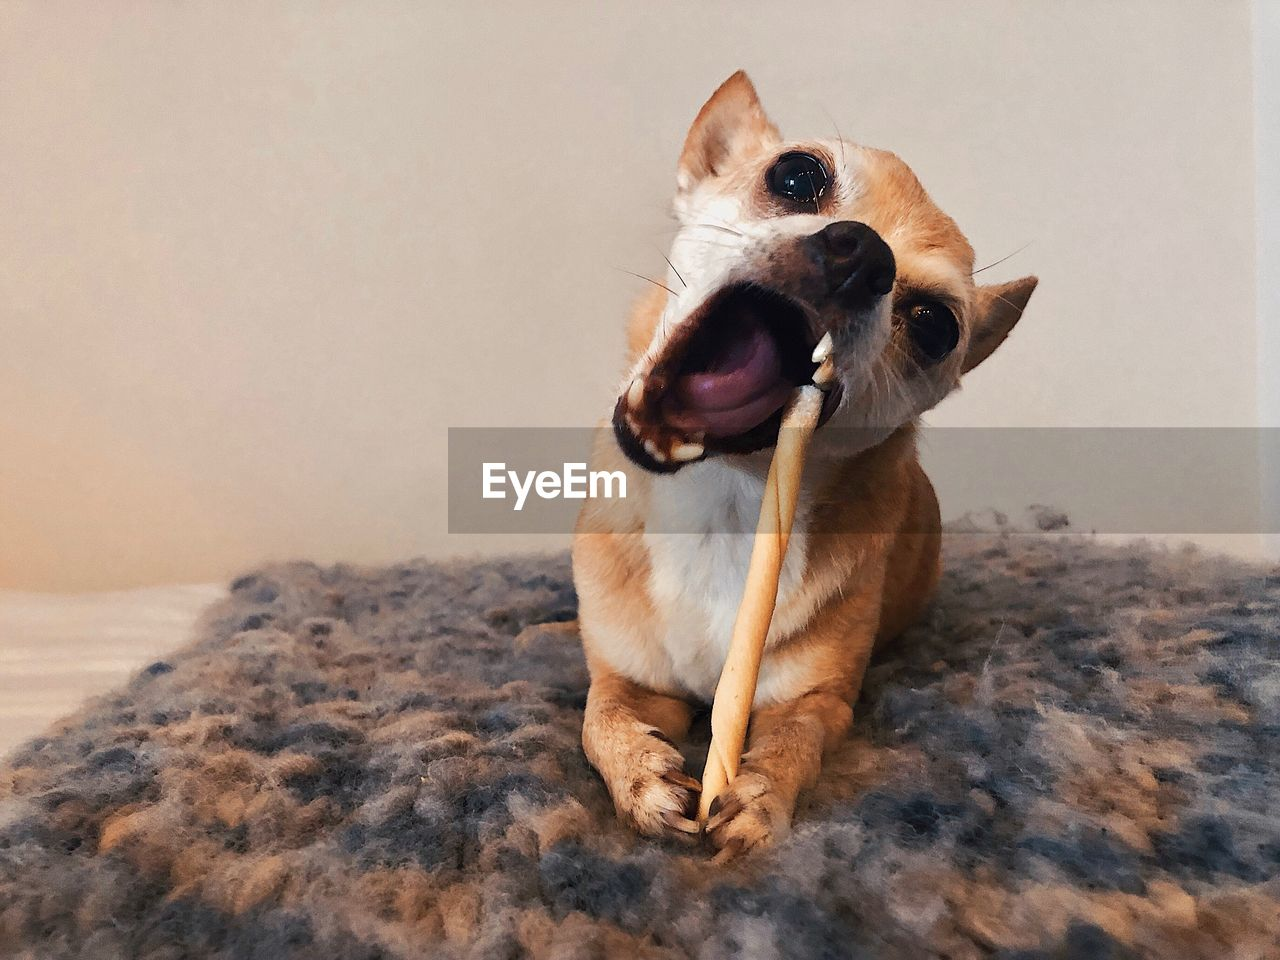 mammal, one animal, animal themes, animal, domestic animals, pets, domestic, canine, dog, vertebrate, indoors, no people, facial expression, mouth, mouth open, sitting, home interior, animal body part, looking, relaxation, animal mouth